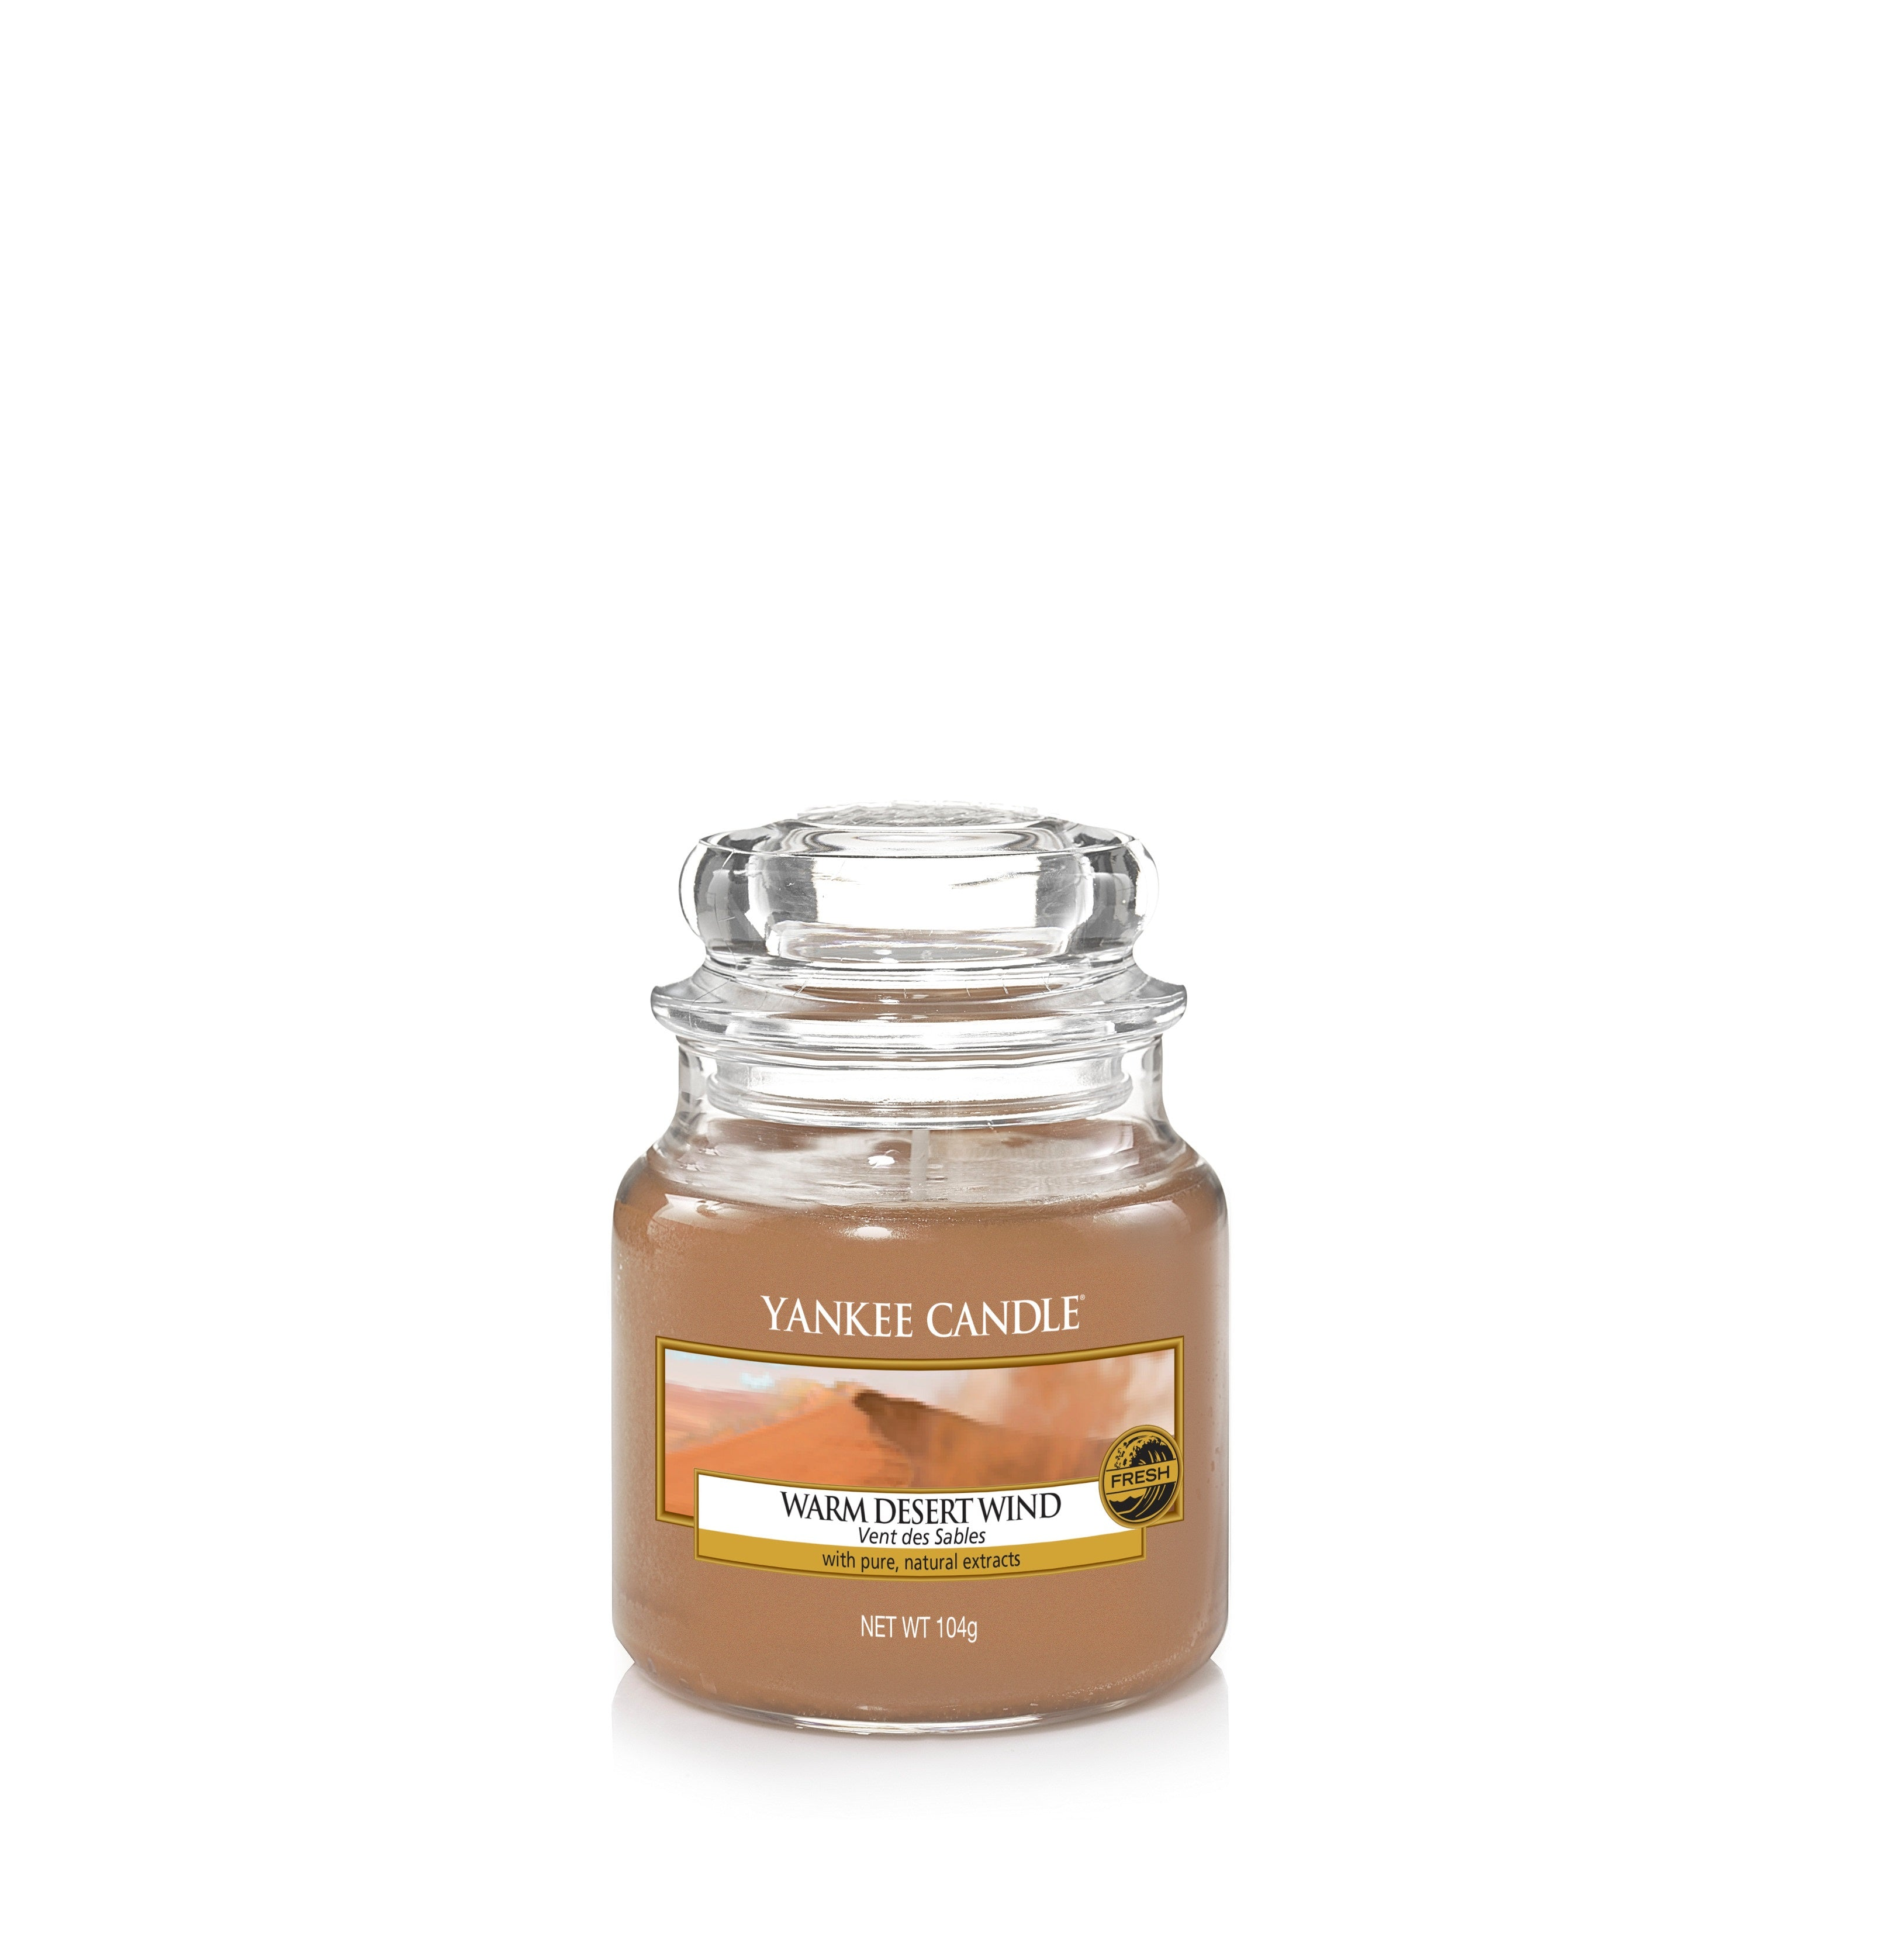 WARM DESERT WIND -Yankee Candle- Giara Piccola